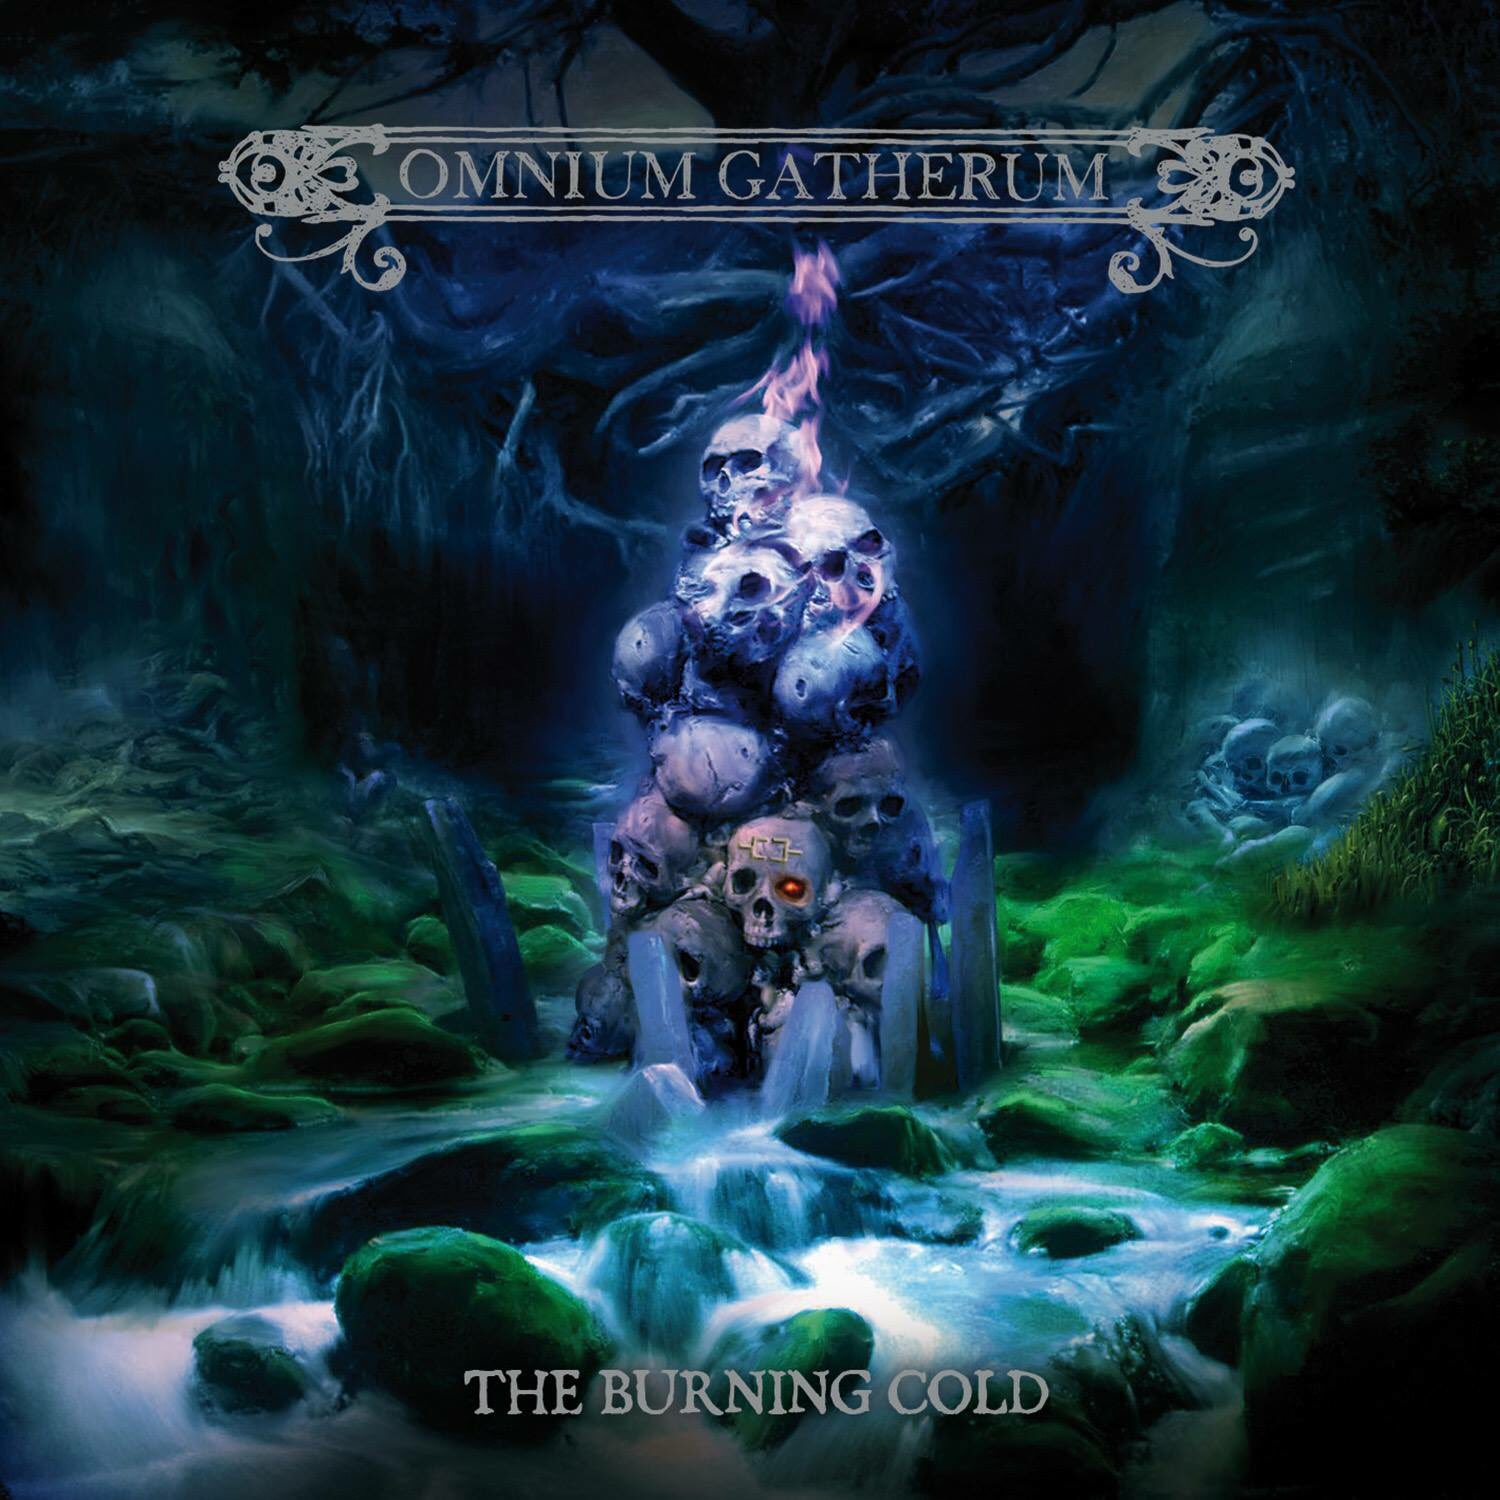 Omnium Gatherum: The Burning Cold